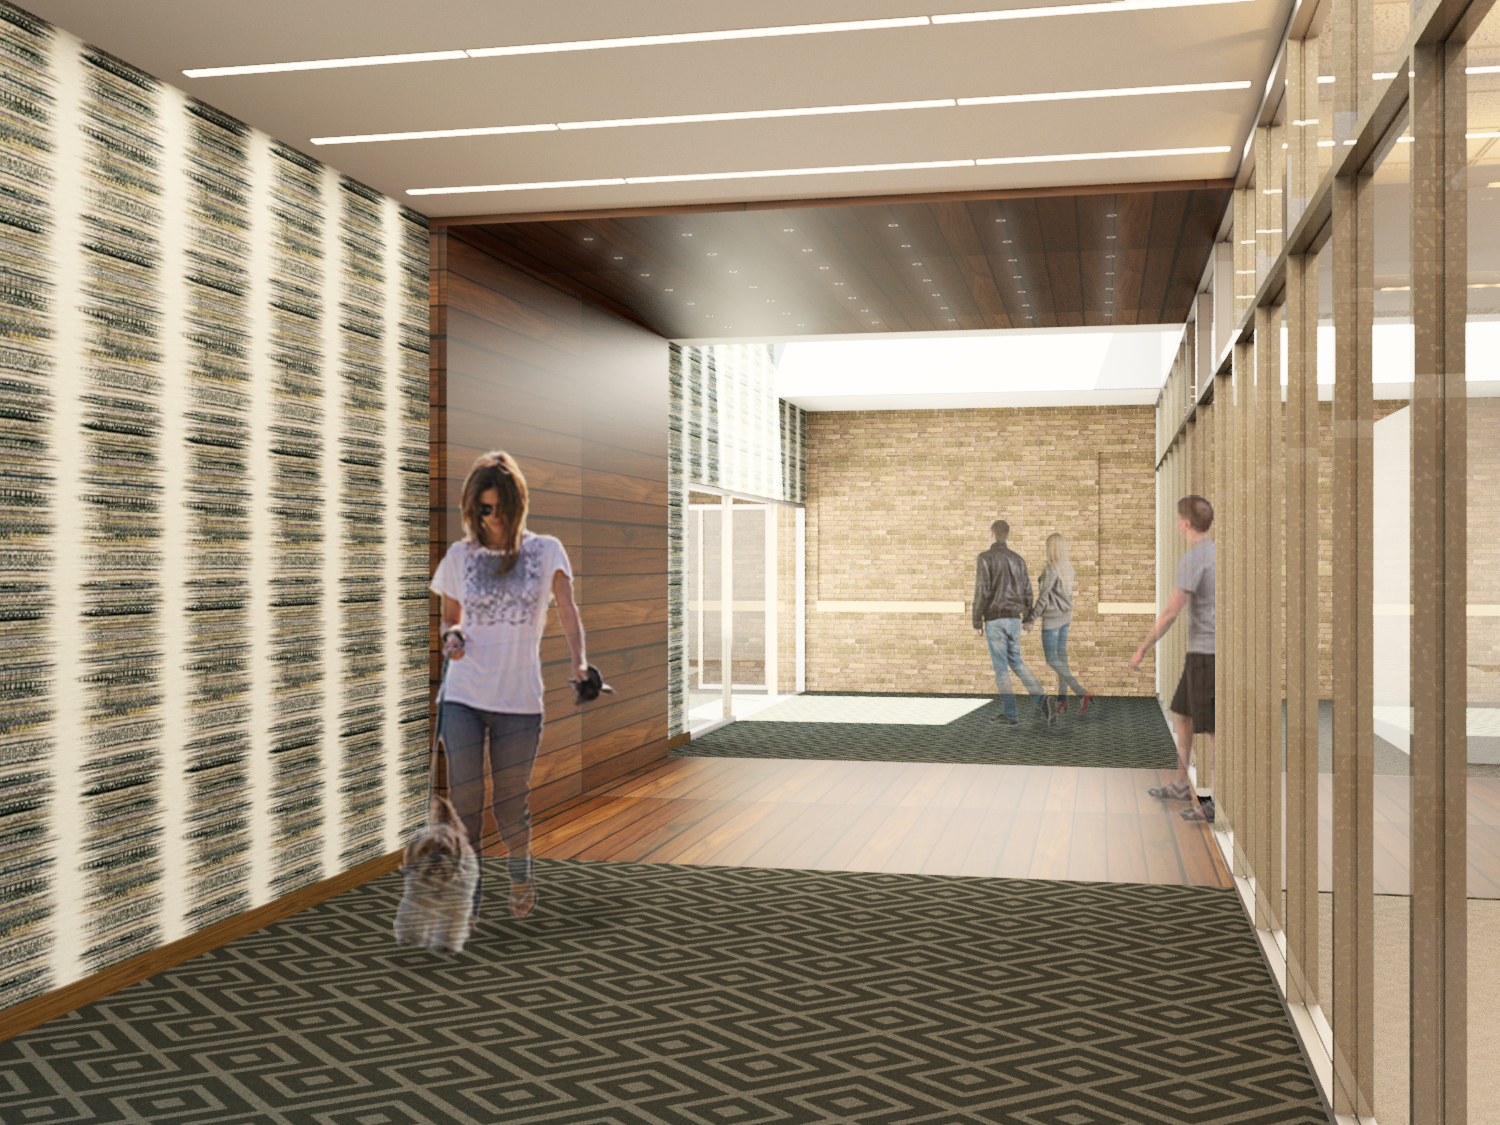 The building will include a slew of amenities including an upscale fitness center.